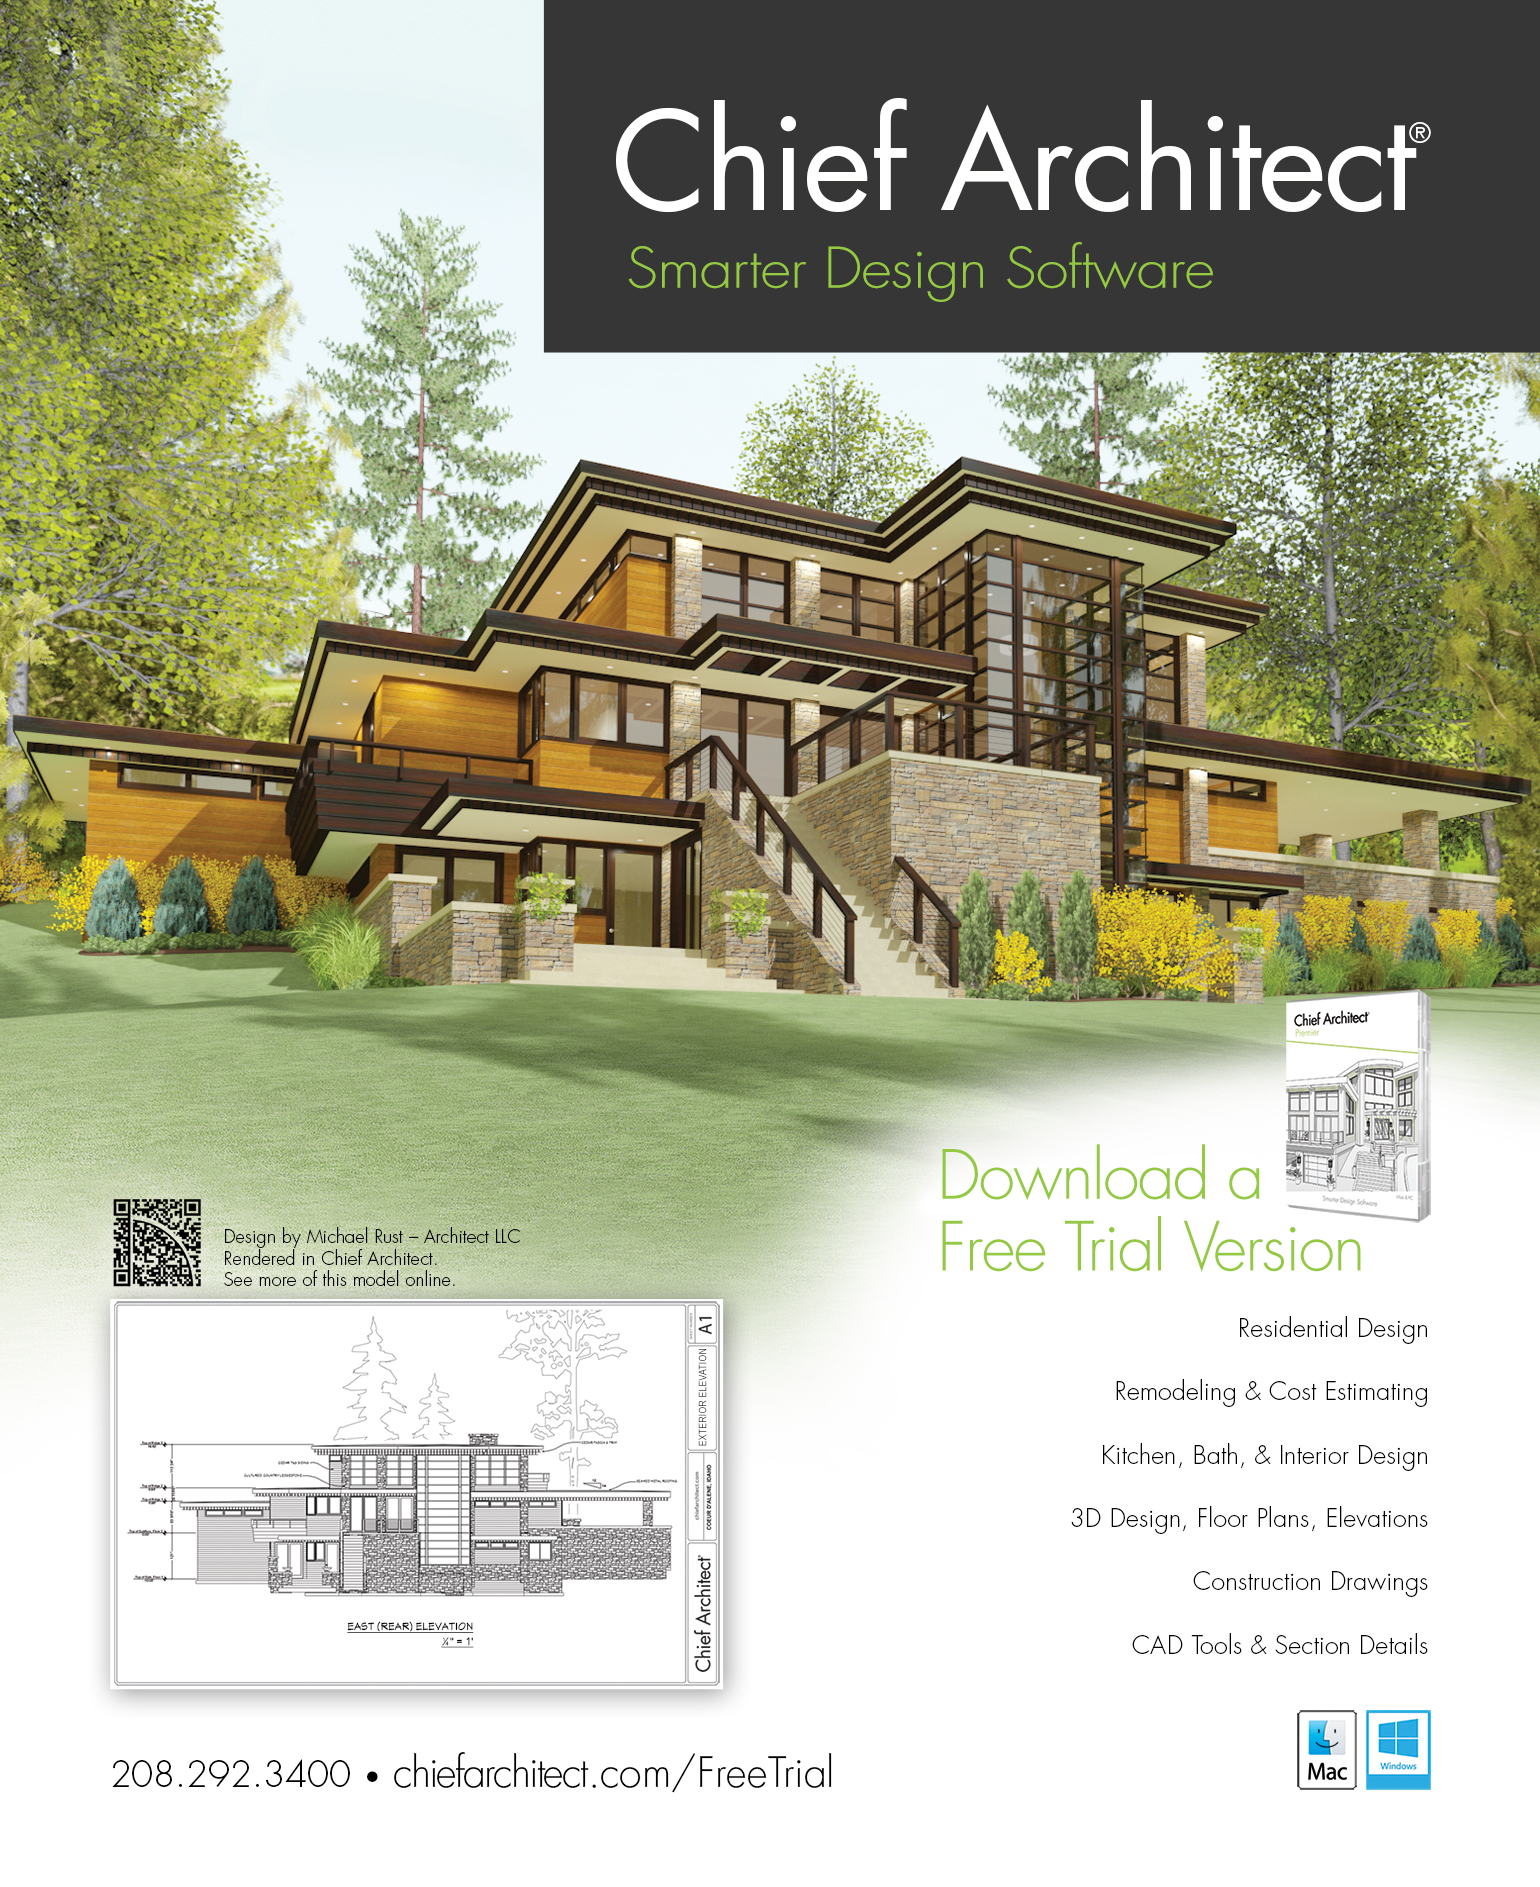 Exceptionnel Home Design Ad U2014 Michael Rust Architect